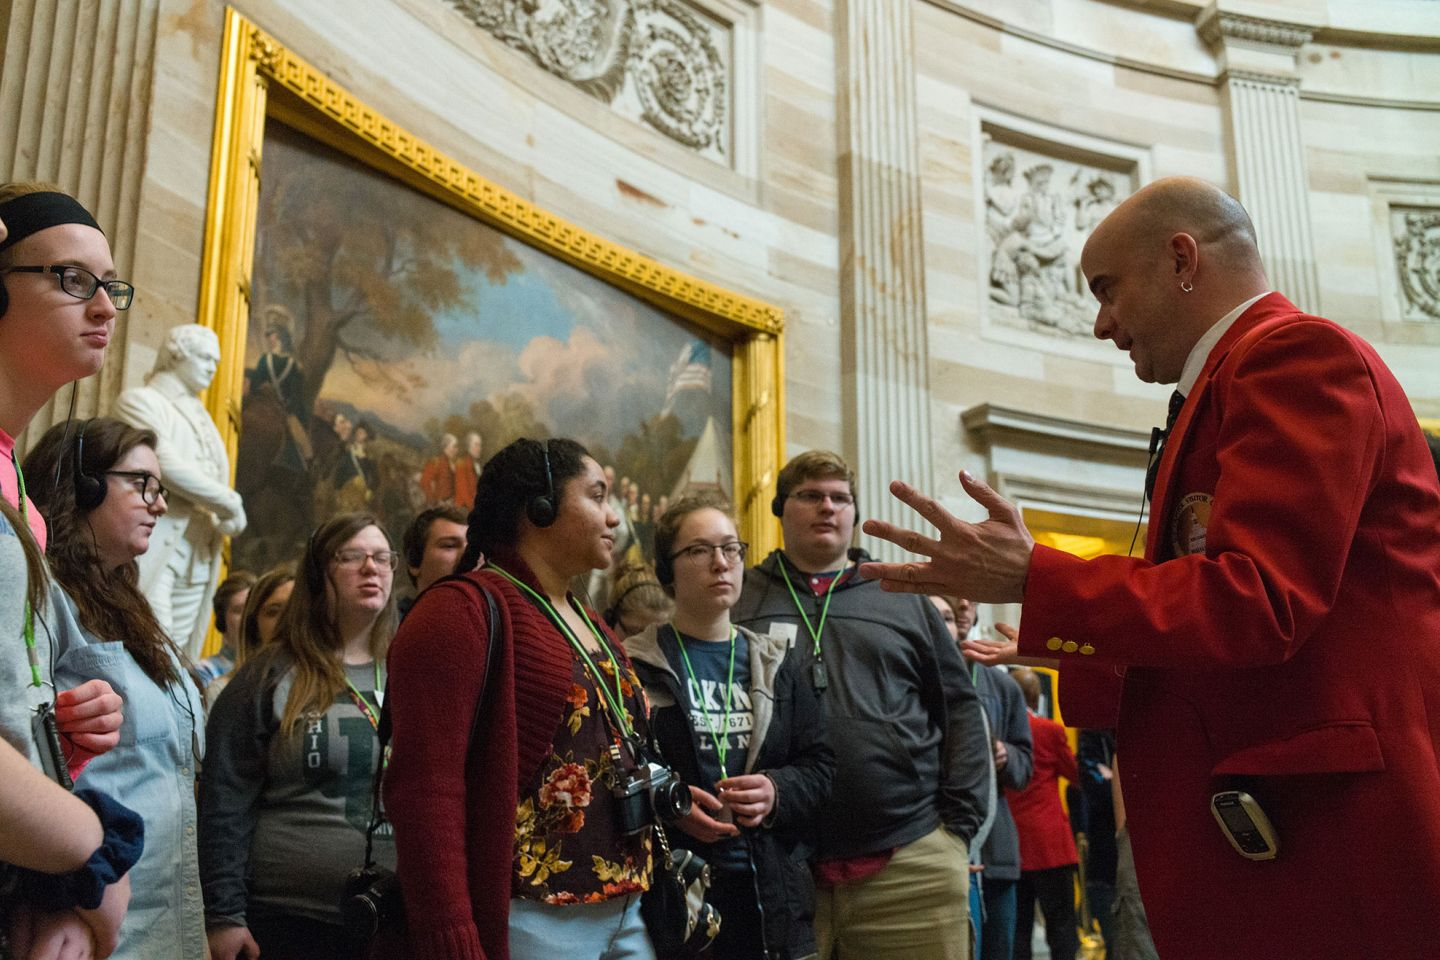 A tour with guide in the U.S. Capitol Rotunda.